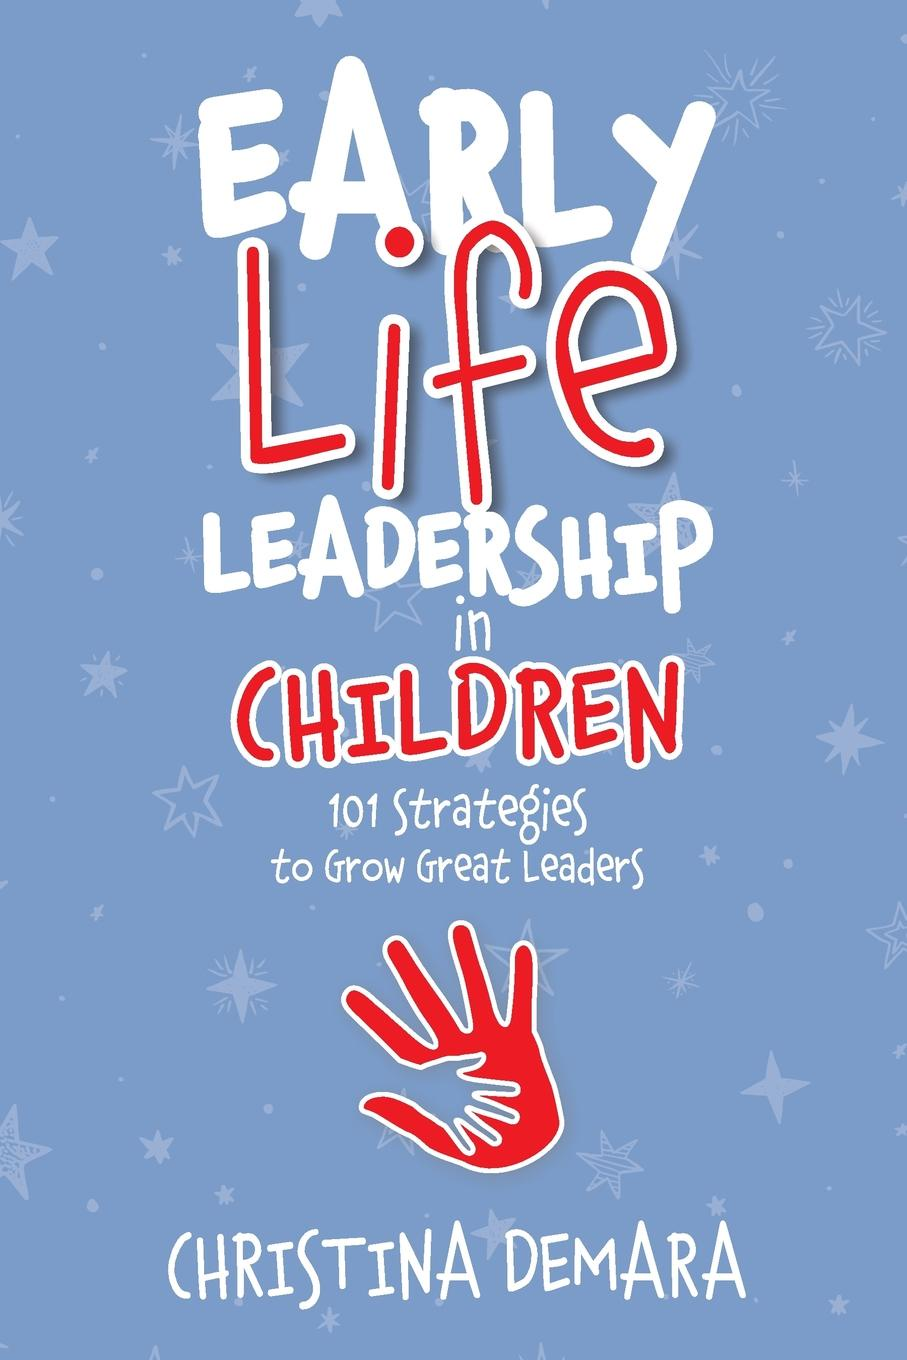 Christina DeMara Early Life Leadership in Children. 101 Strategies to Grow Great Leaders leadership institute women with purpose finding life balance direction